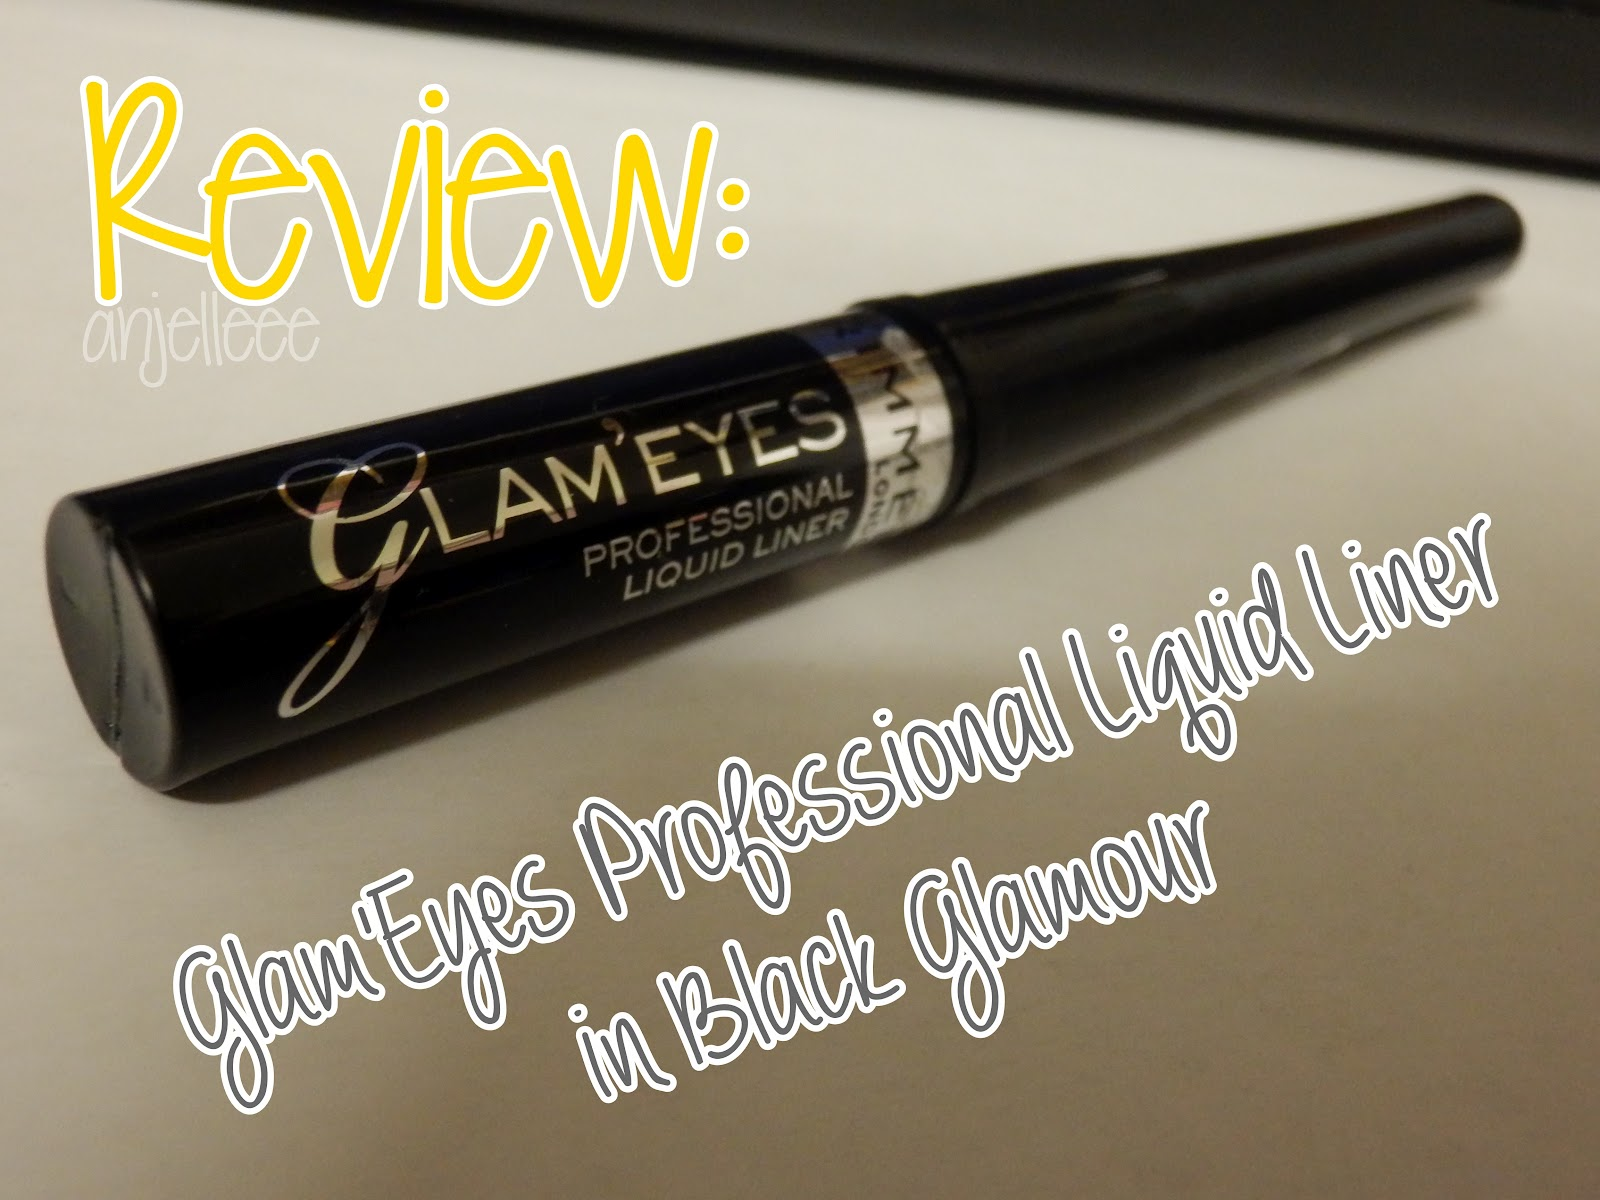 86bec7eaac9 Just another beauty blogger: Rimmel London Glam'Eyes Professional ...